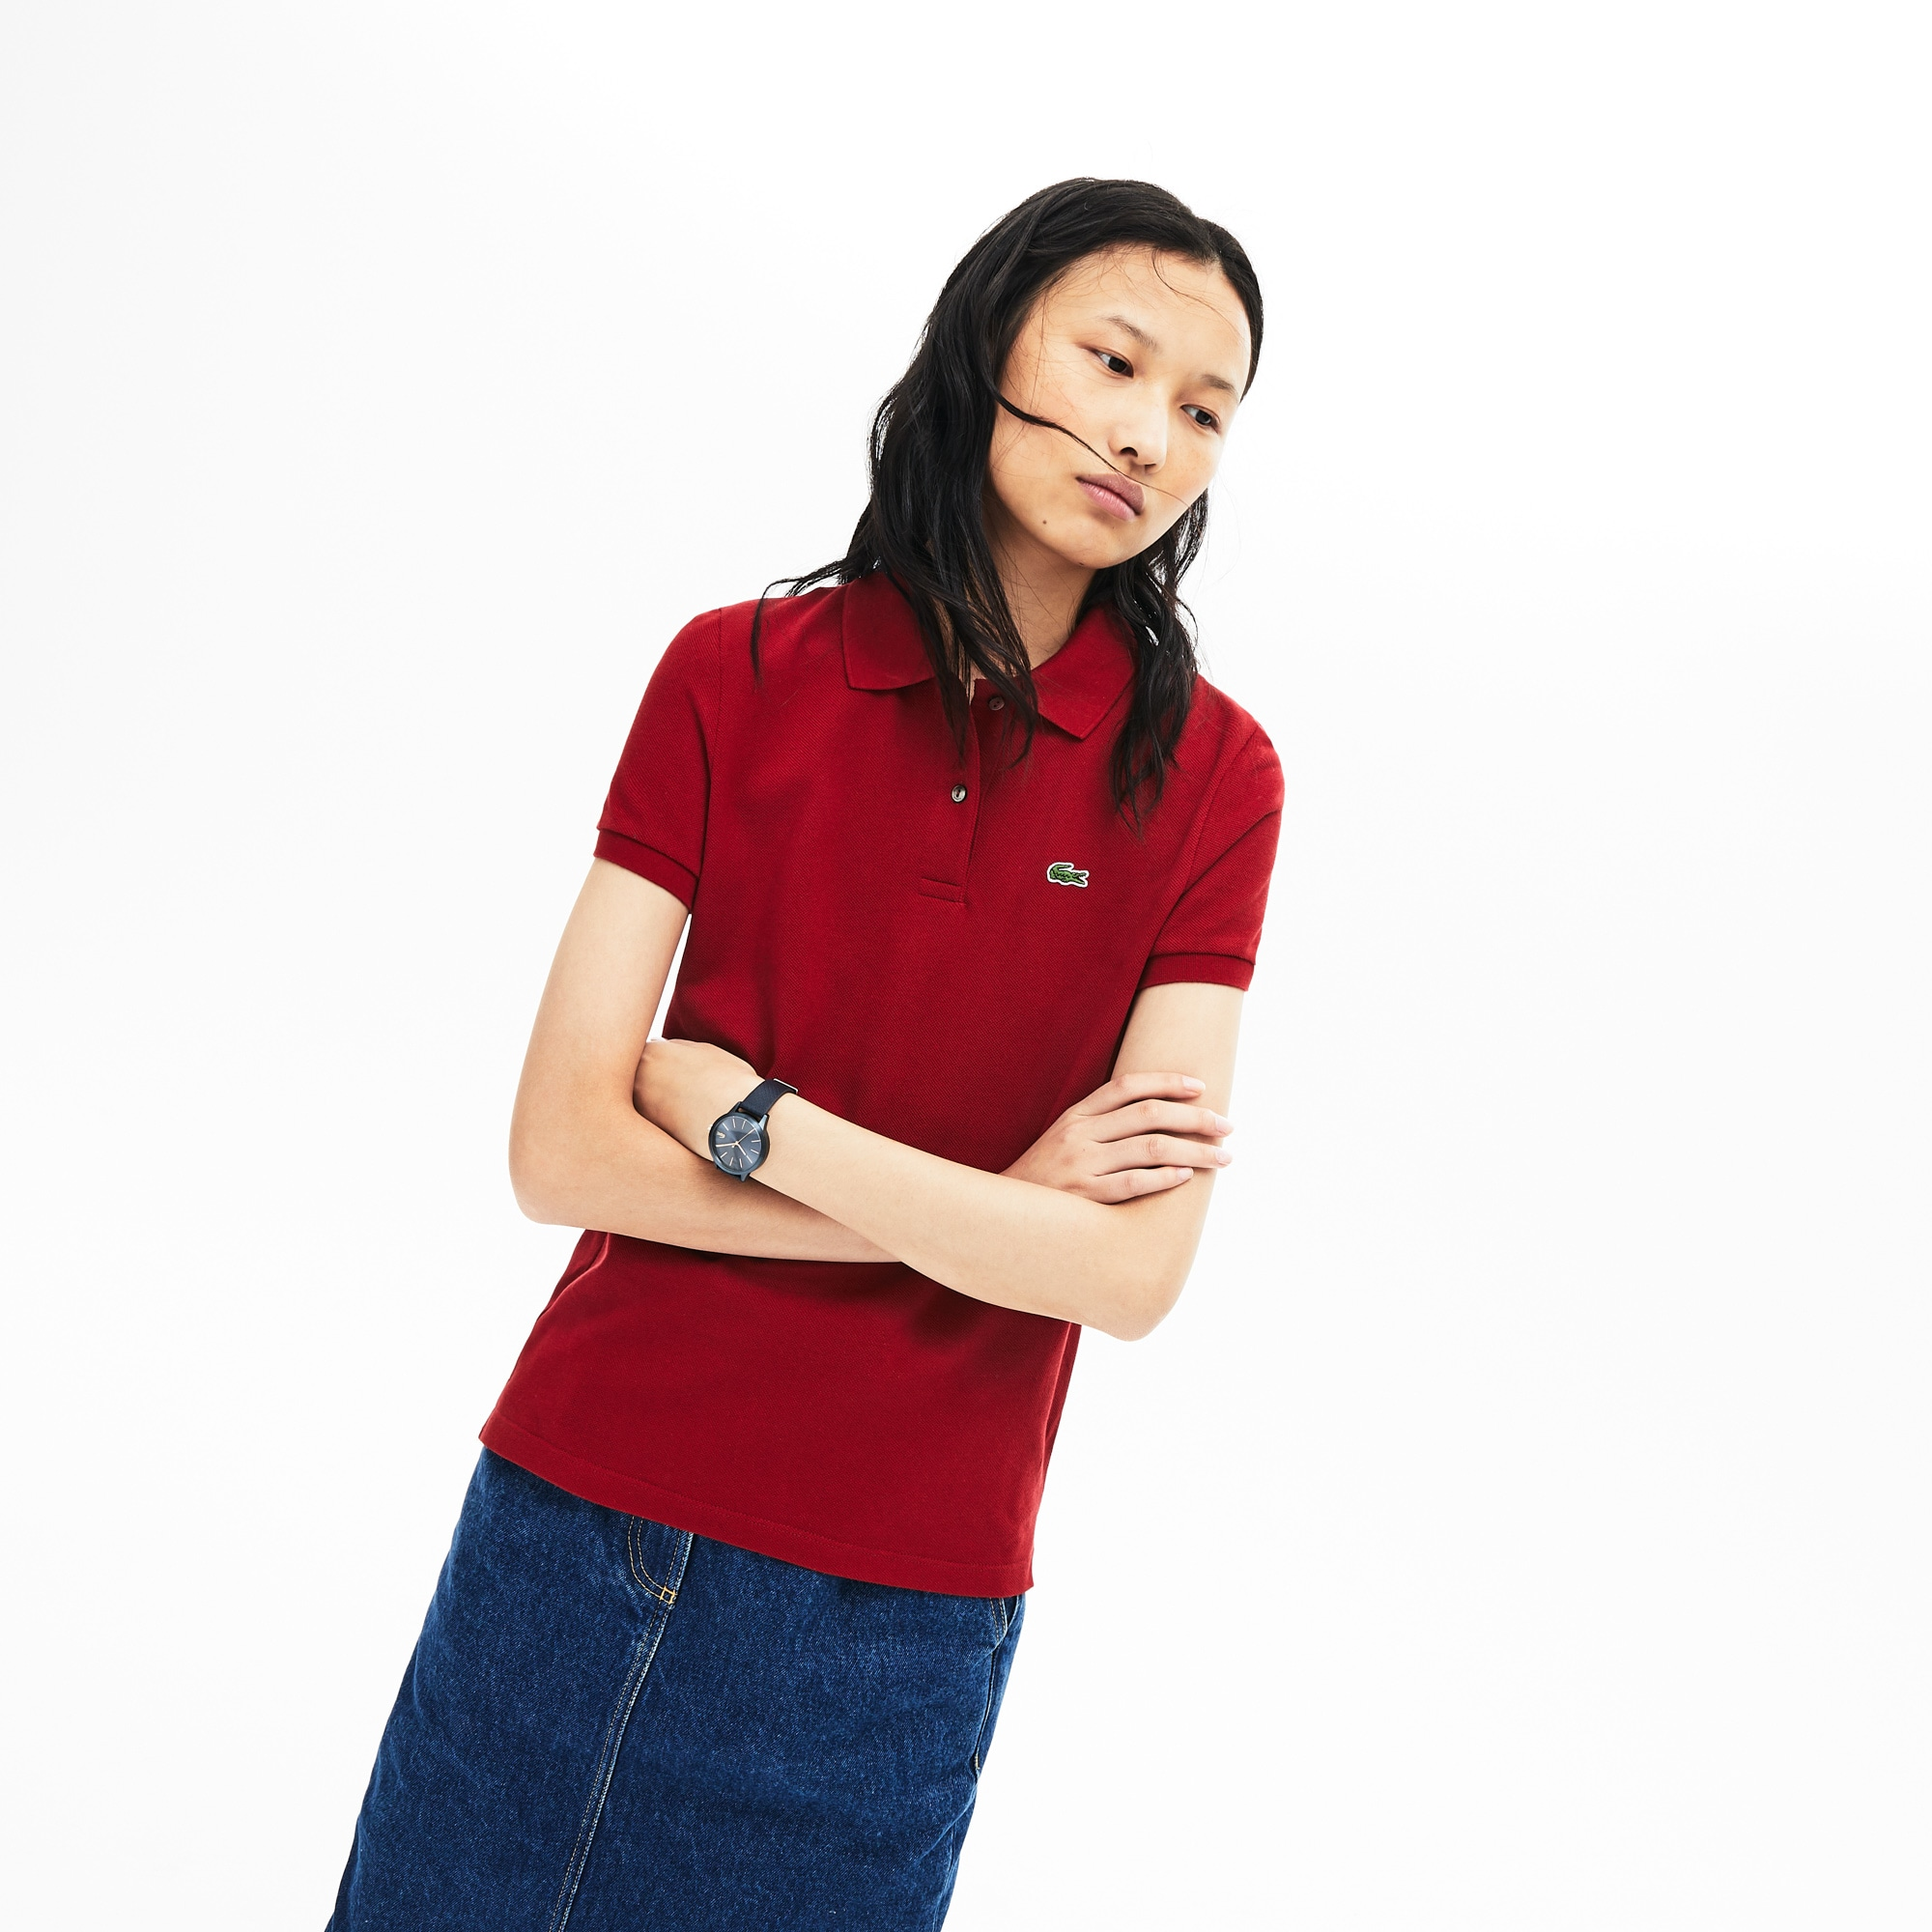 Women's Classic Fit Soft Cotton Petit Piqué Polo Shirt